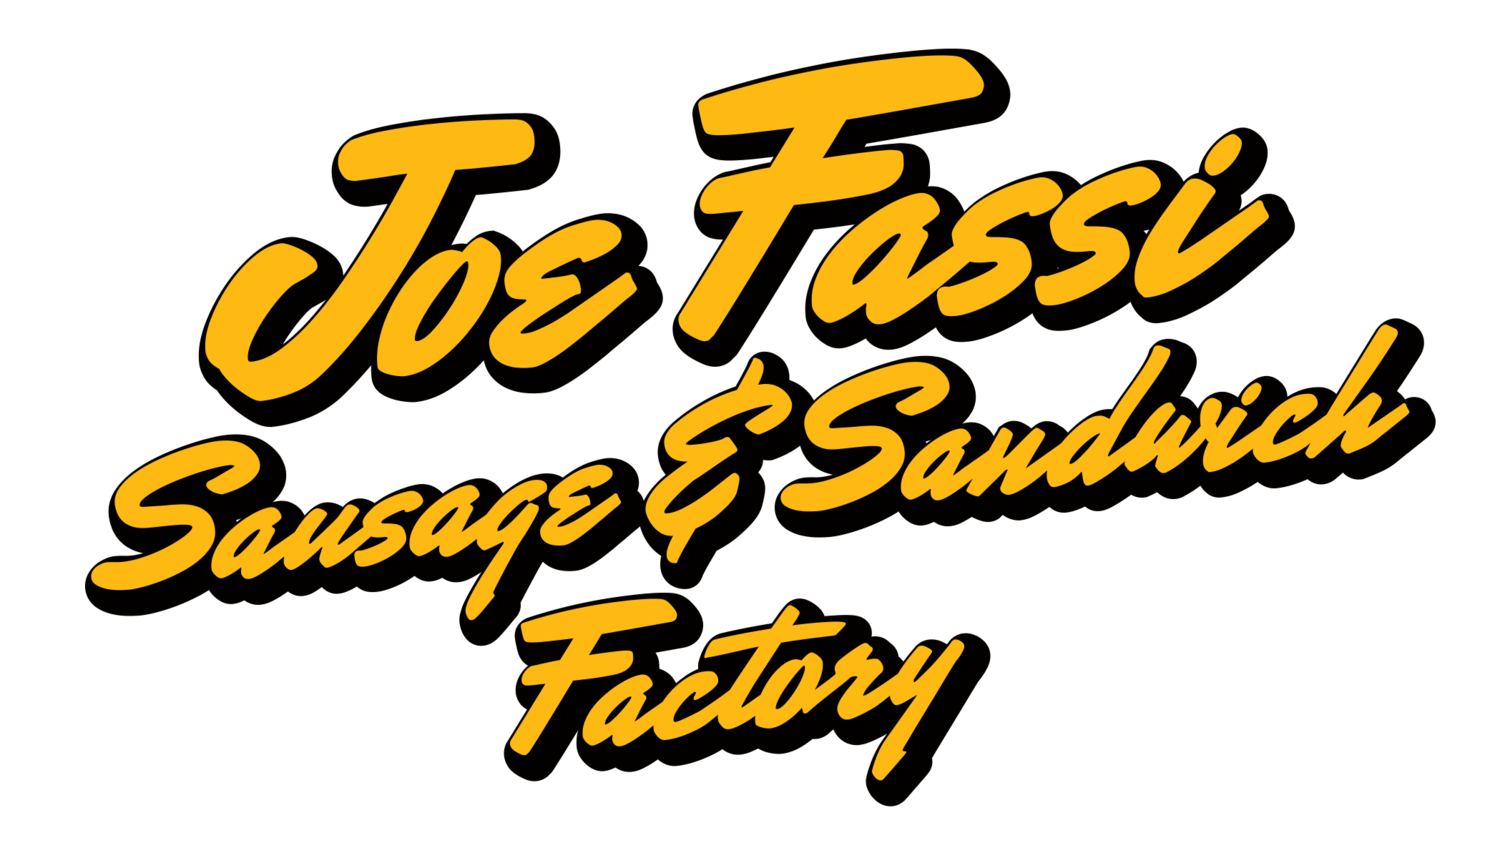 Joe Fassi Sausage & Sandwich Factory